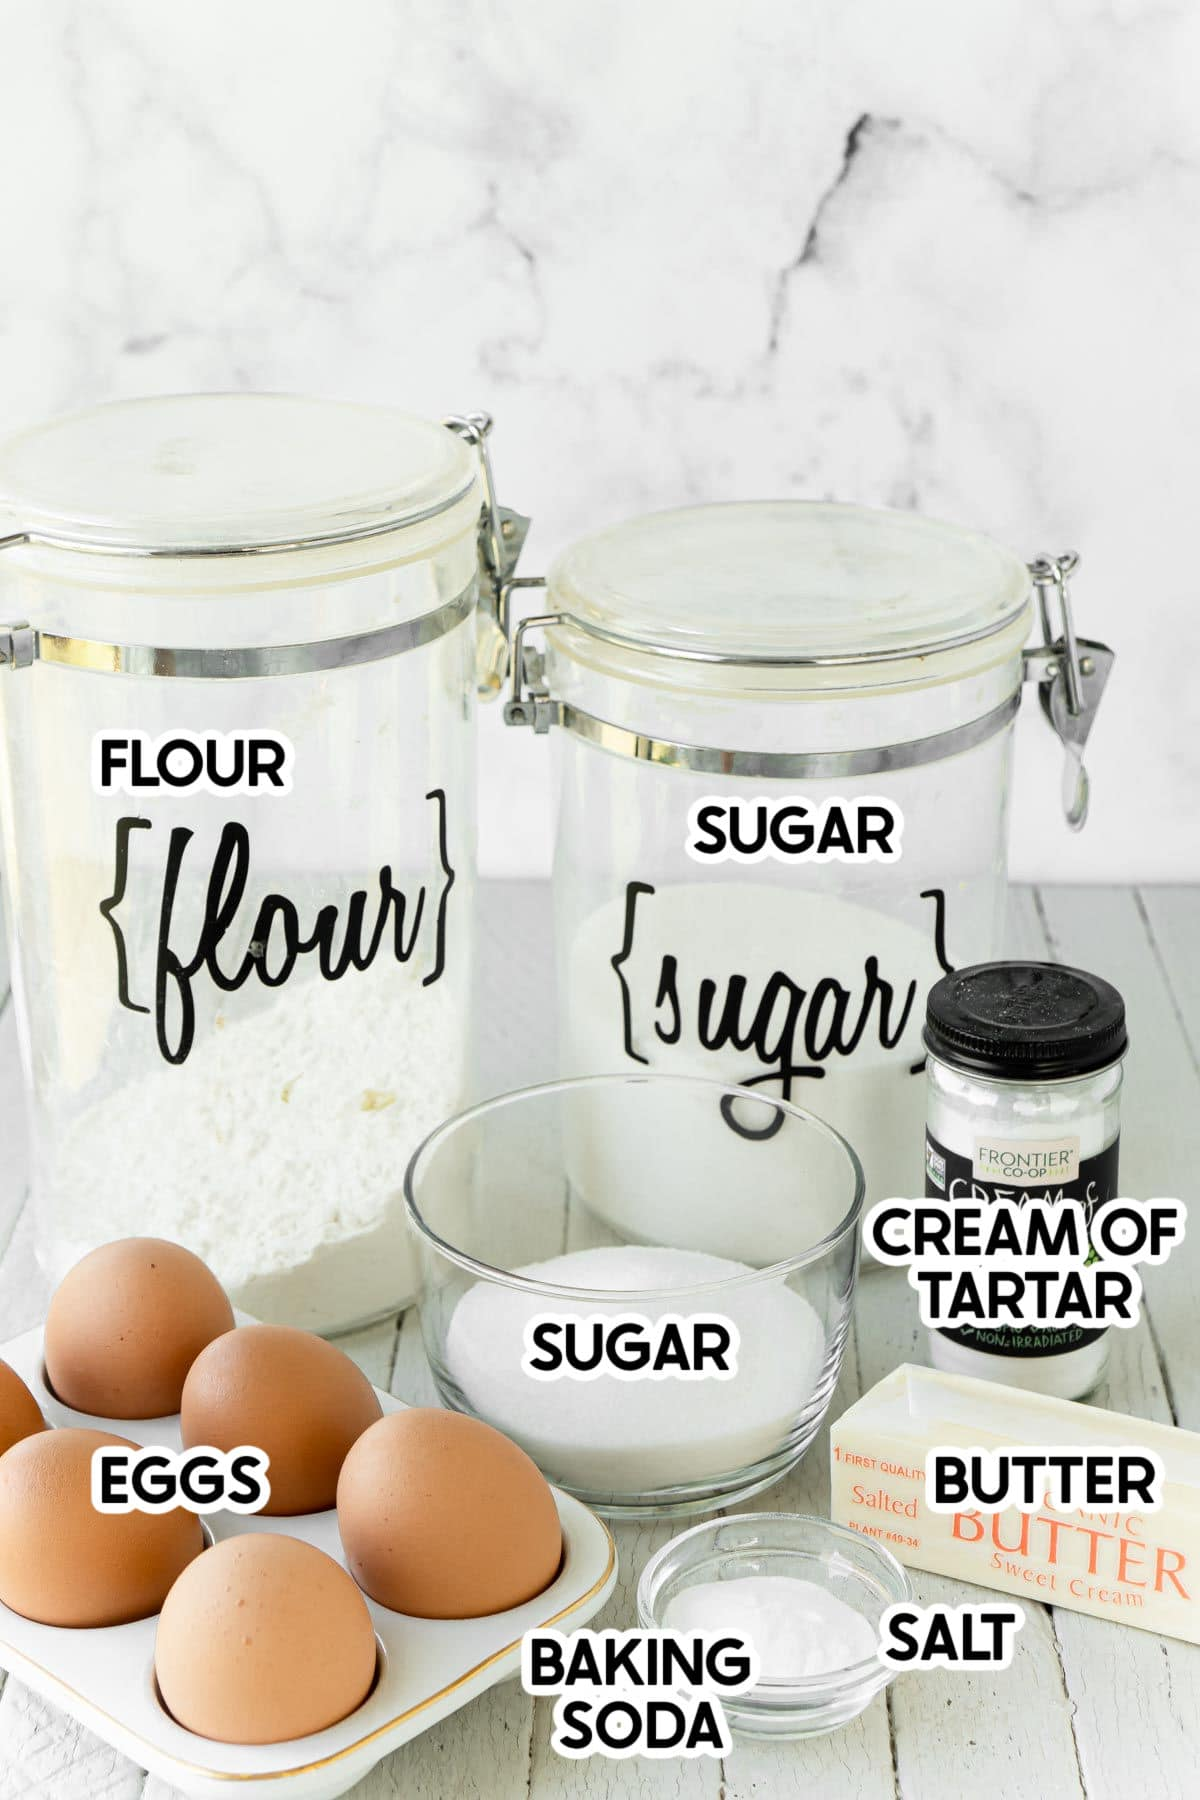 ingredients for snickerdoodles with labels